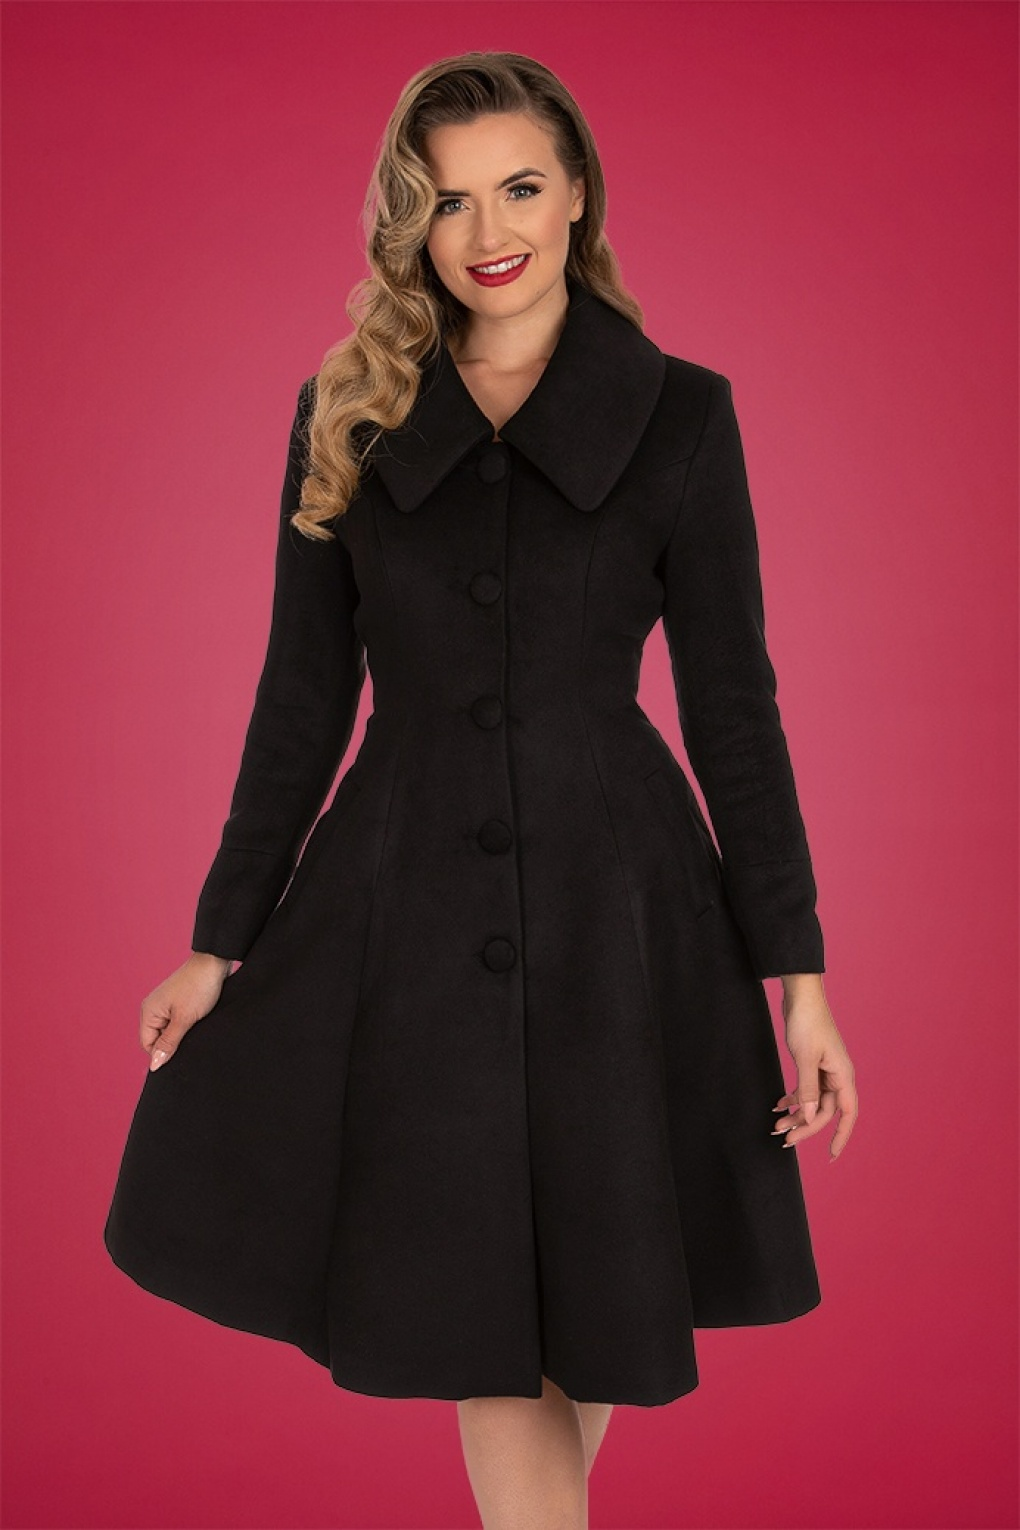 1950s Jackets, Coats, Bolero | Swing, Pin Up, Rockabilly 50s Naomi Swing Coat in Black £75.72 AT vintagedancer.com